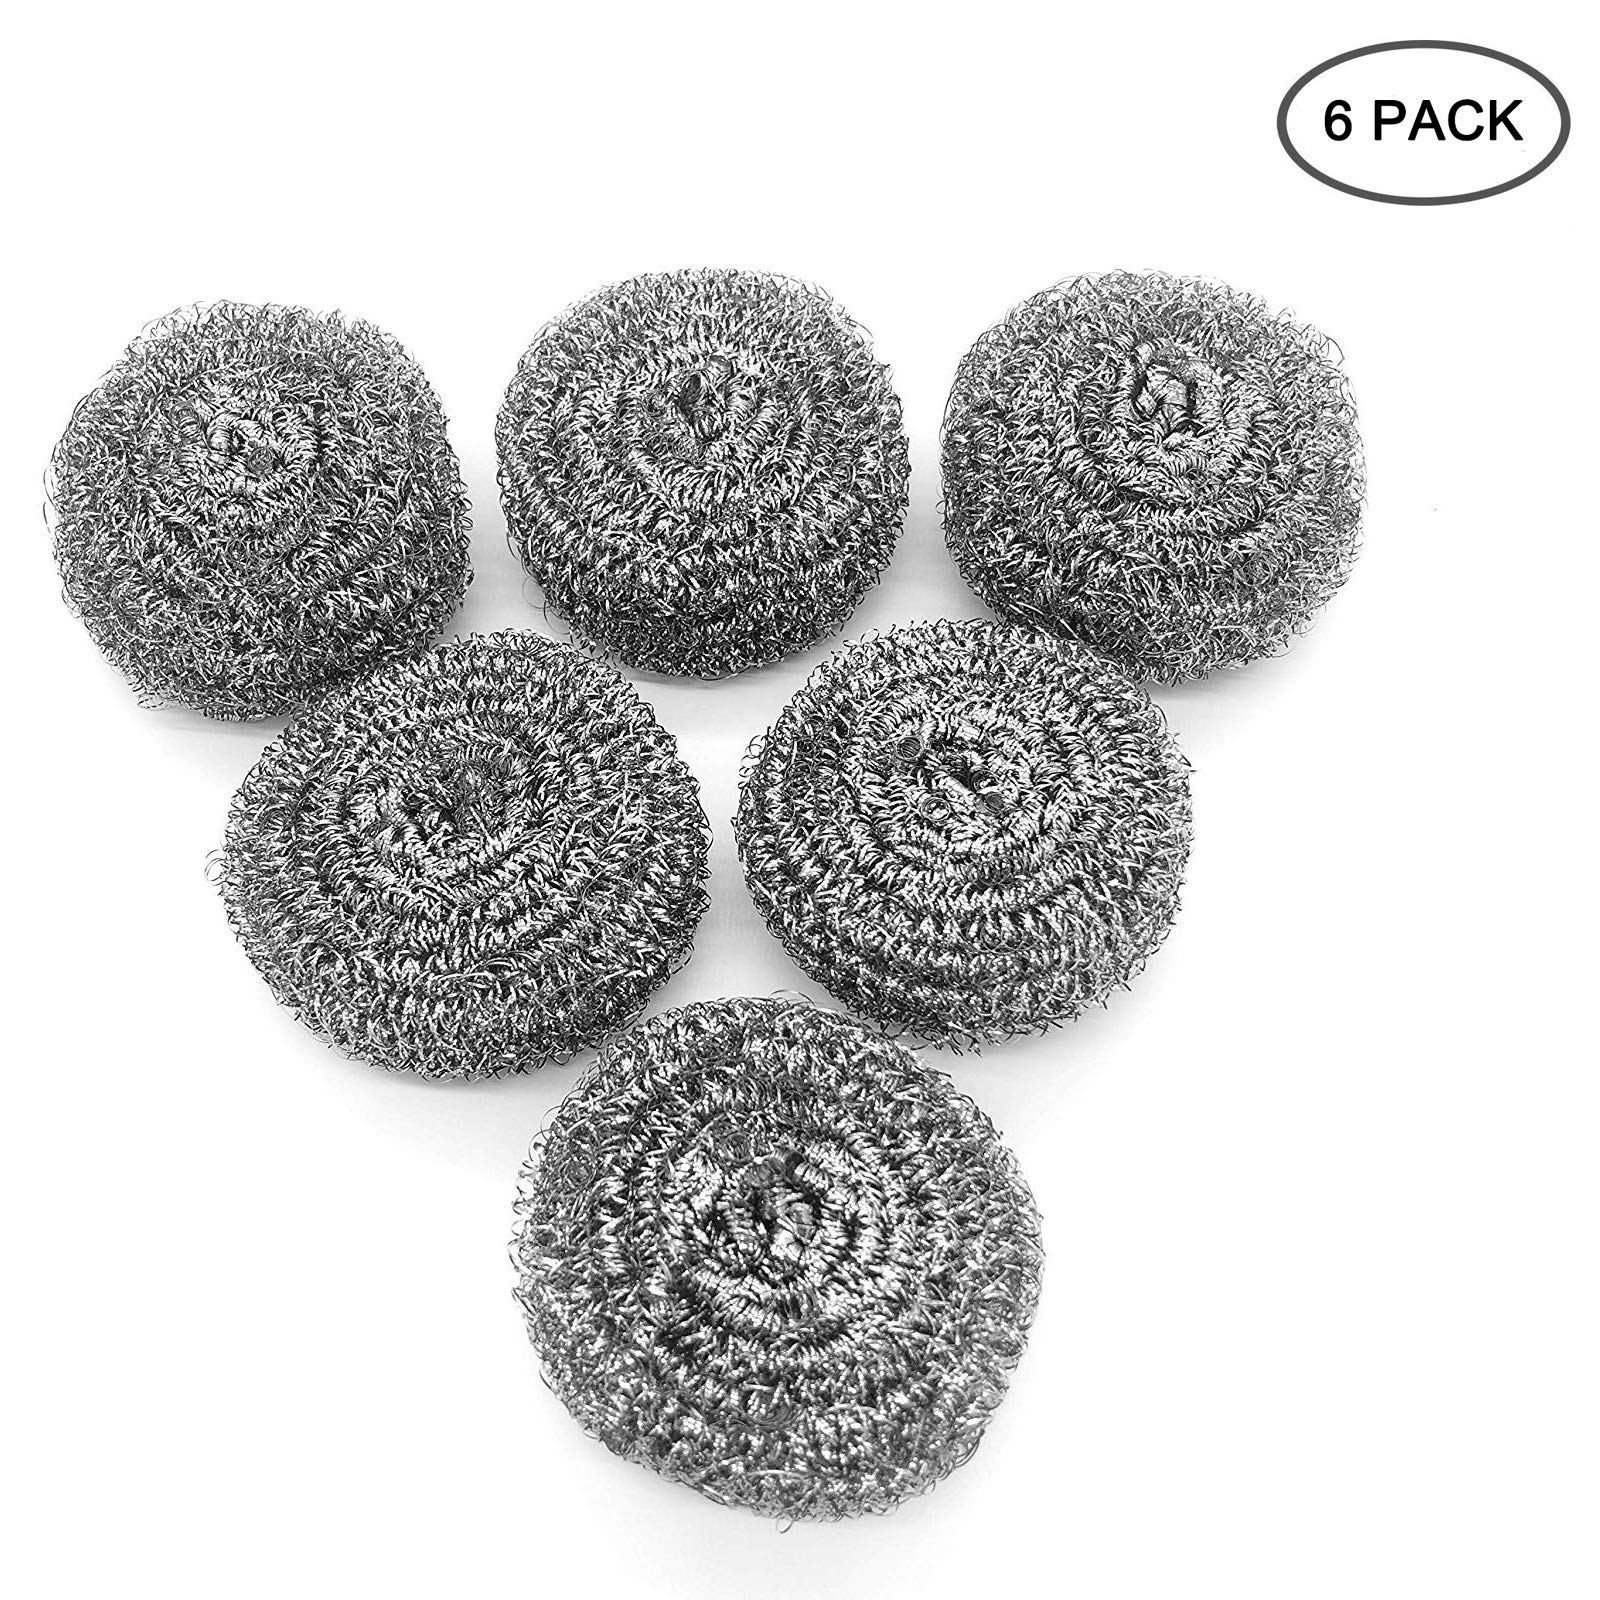 Stainless Steel Sponges, Scrubbing Scouring Scourer Pad, Steel Wool Scrubber Brush for Kitchens Washing Cleaning, Bathroom and More,6 Pack